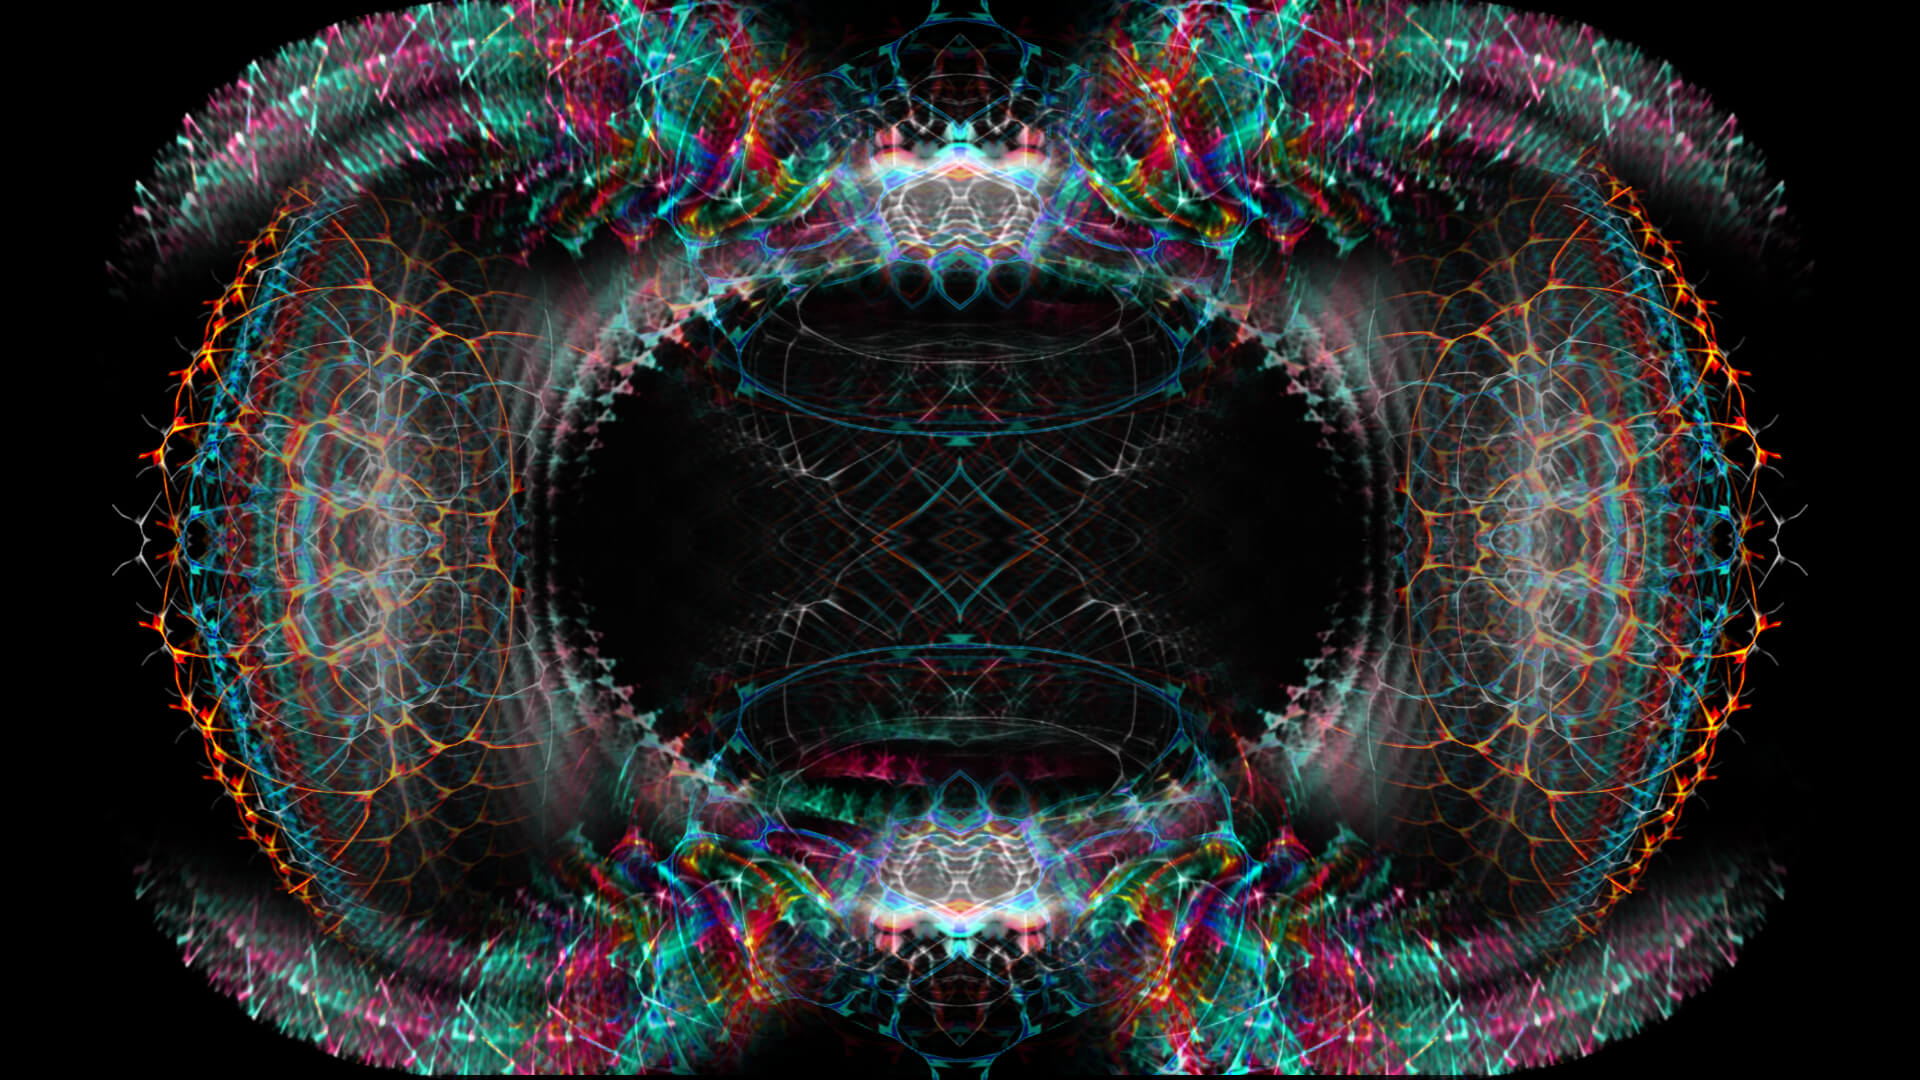 Between you and me - digital abstract art by Mitek